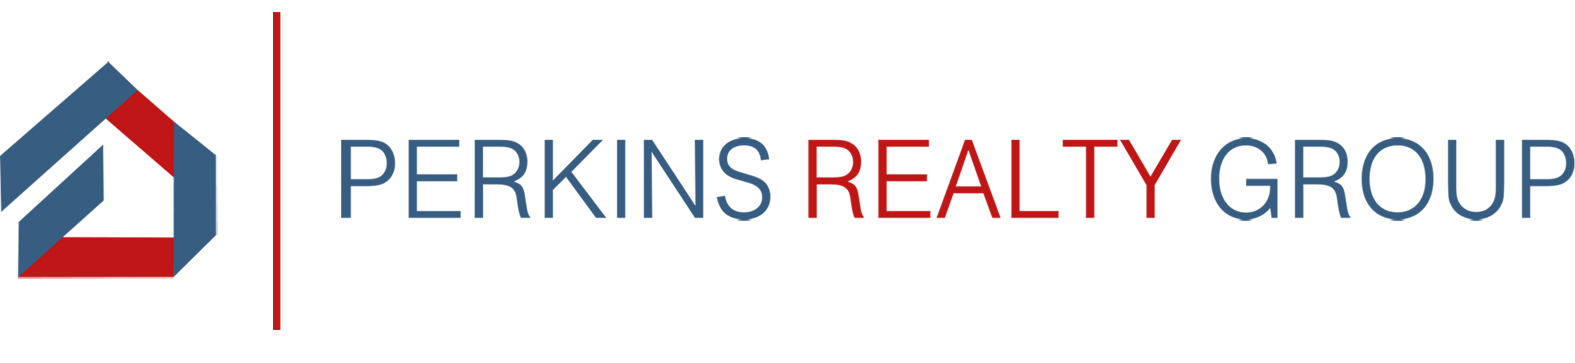 Perkins Realty Group